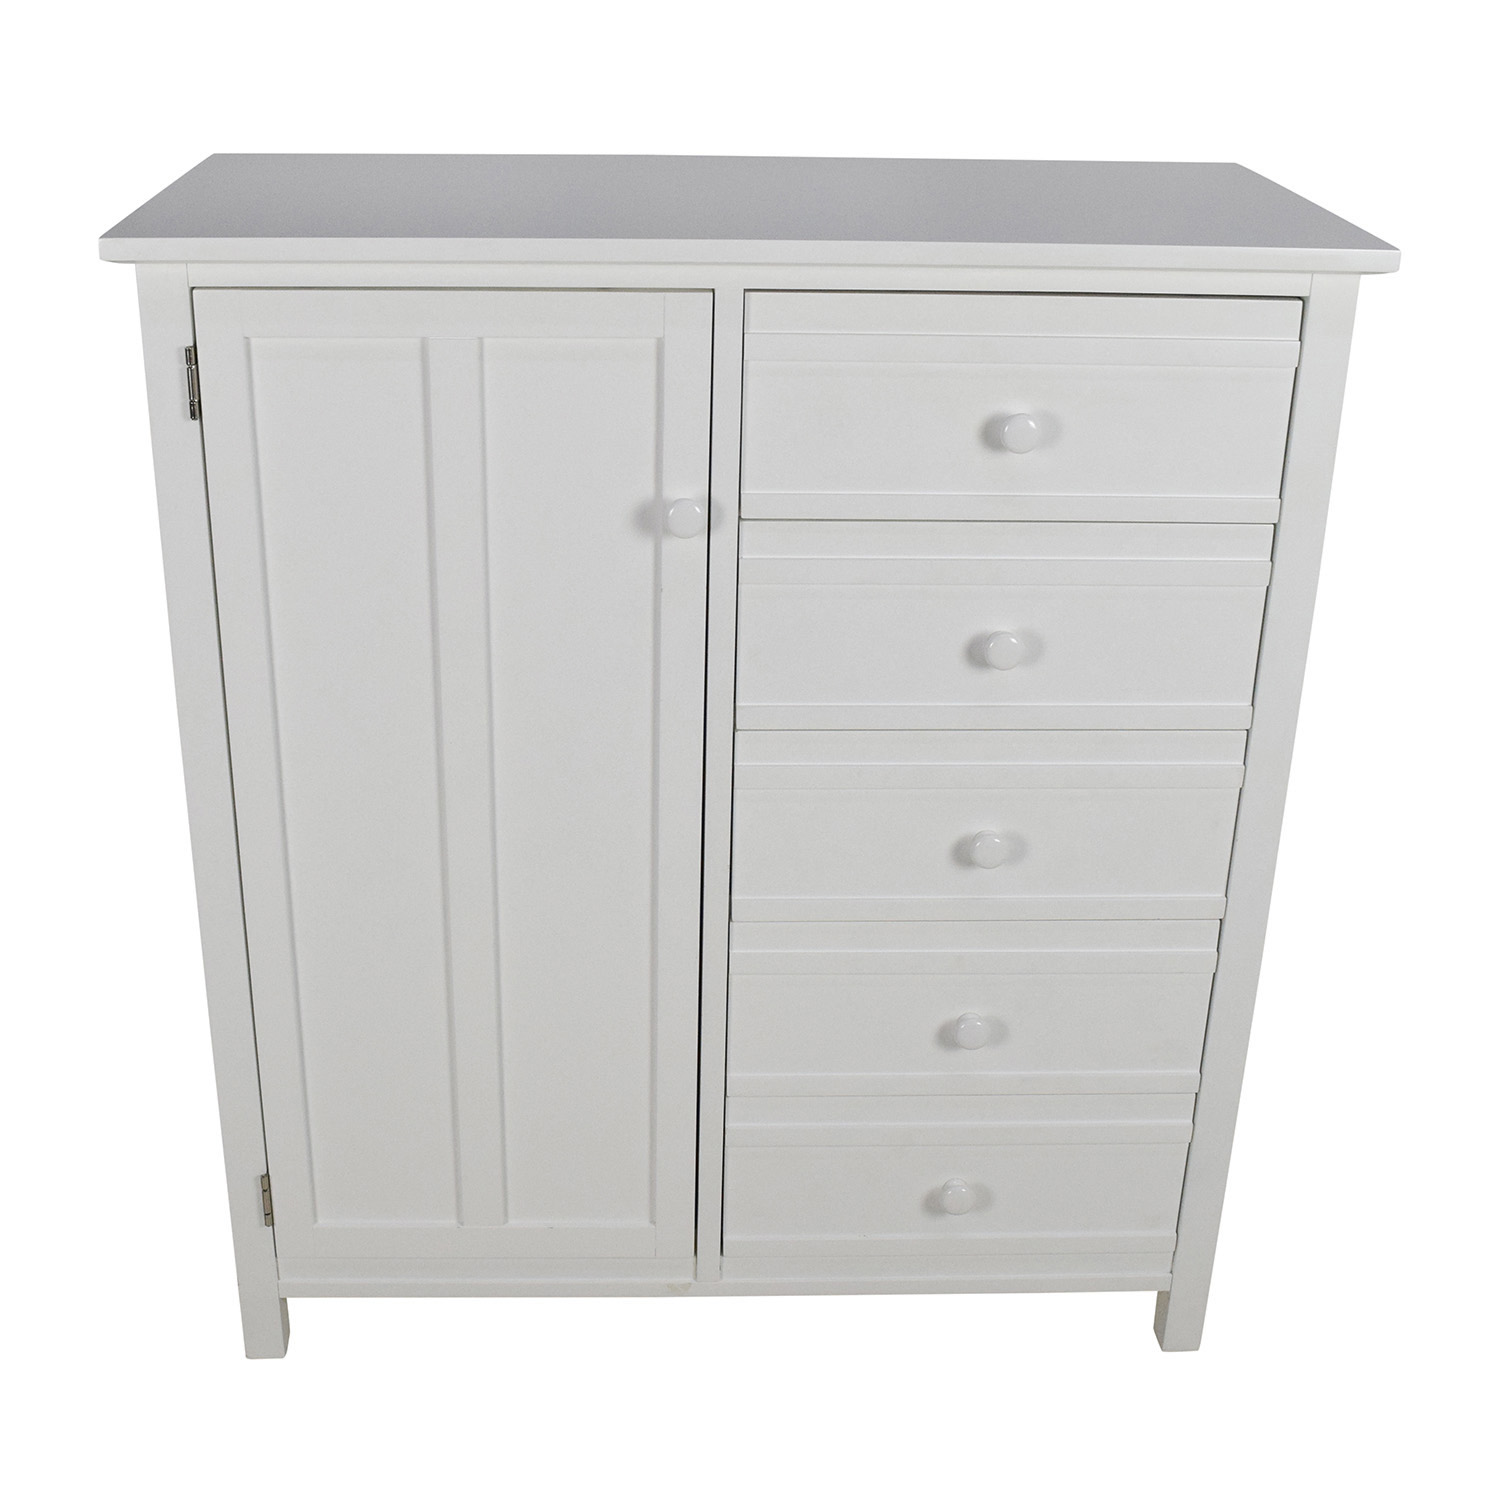 buy Crate & Barrel Brighton White Wardrobe Crate and Barrel